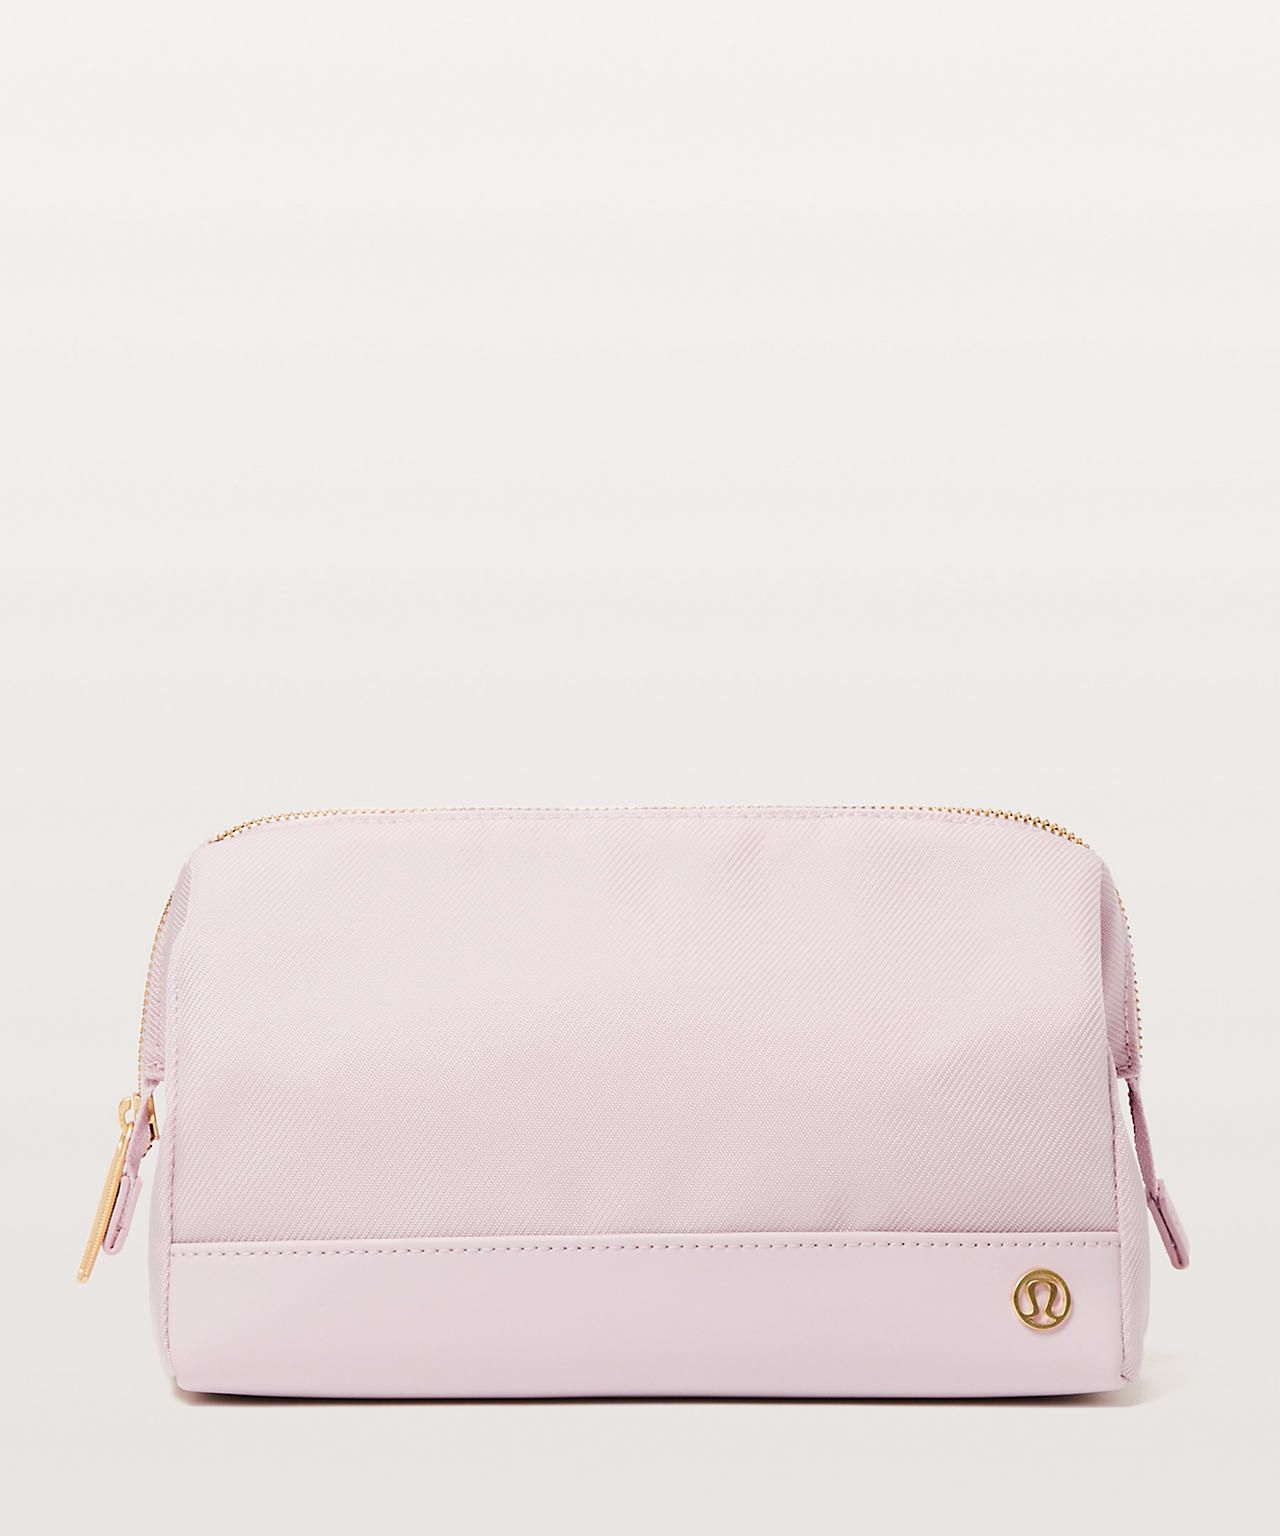 def882b9ad makeup bag | 2018 Wish List | Bags, Lululemon bags, Lululemon